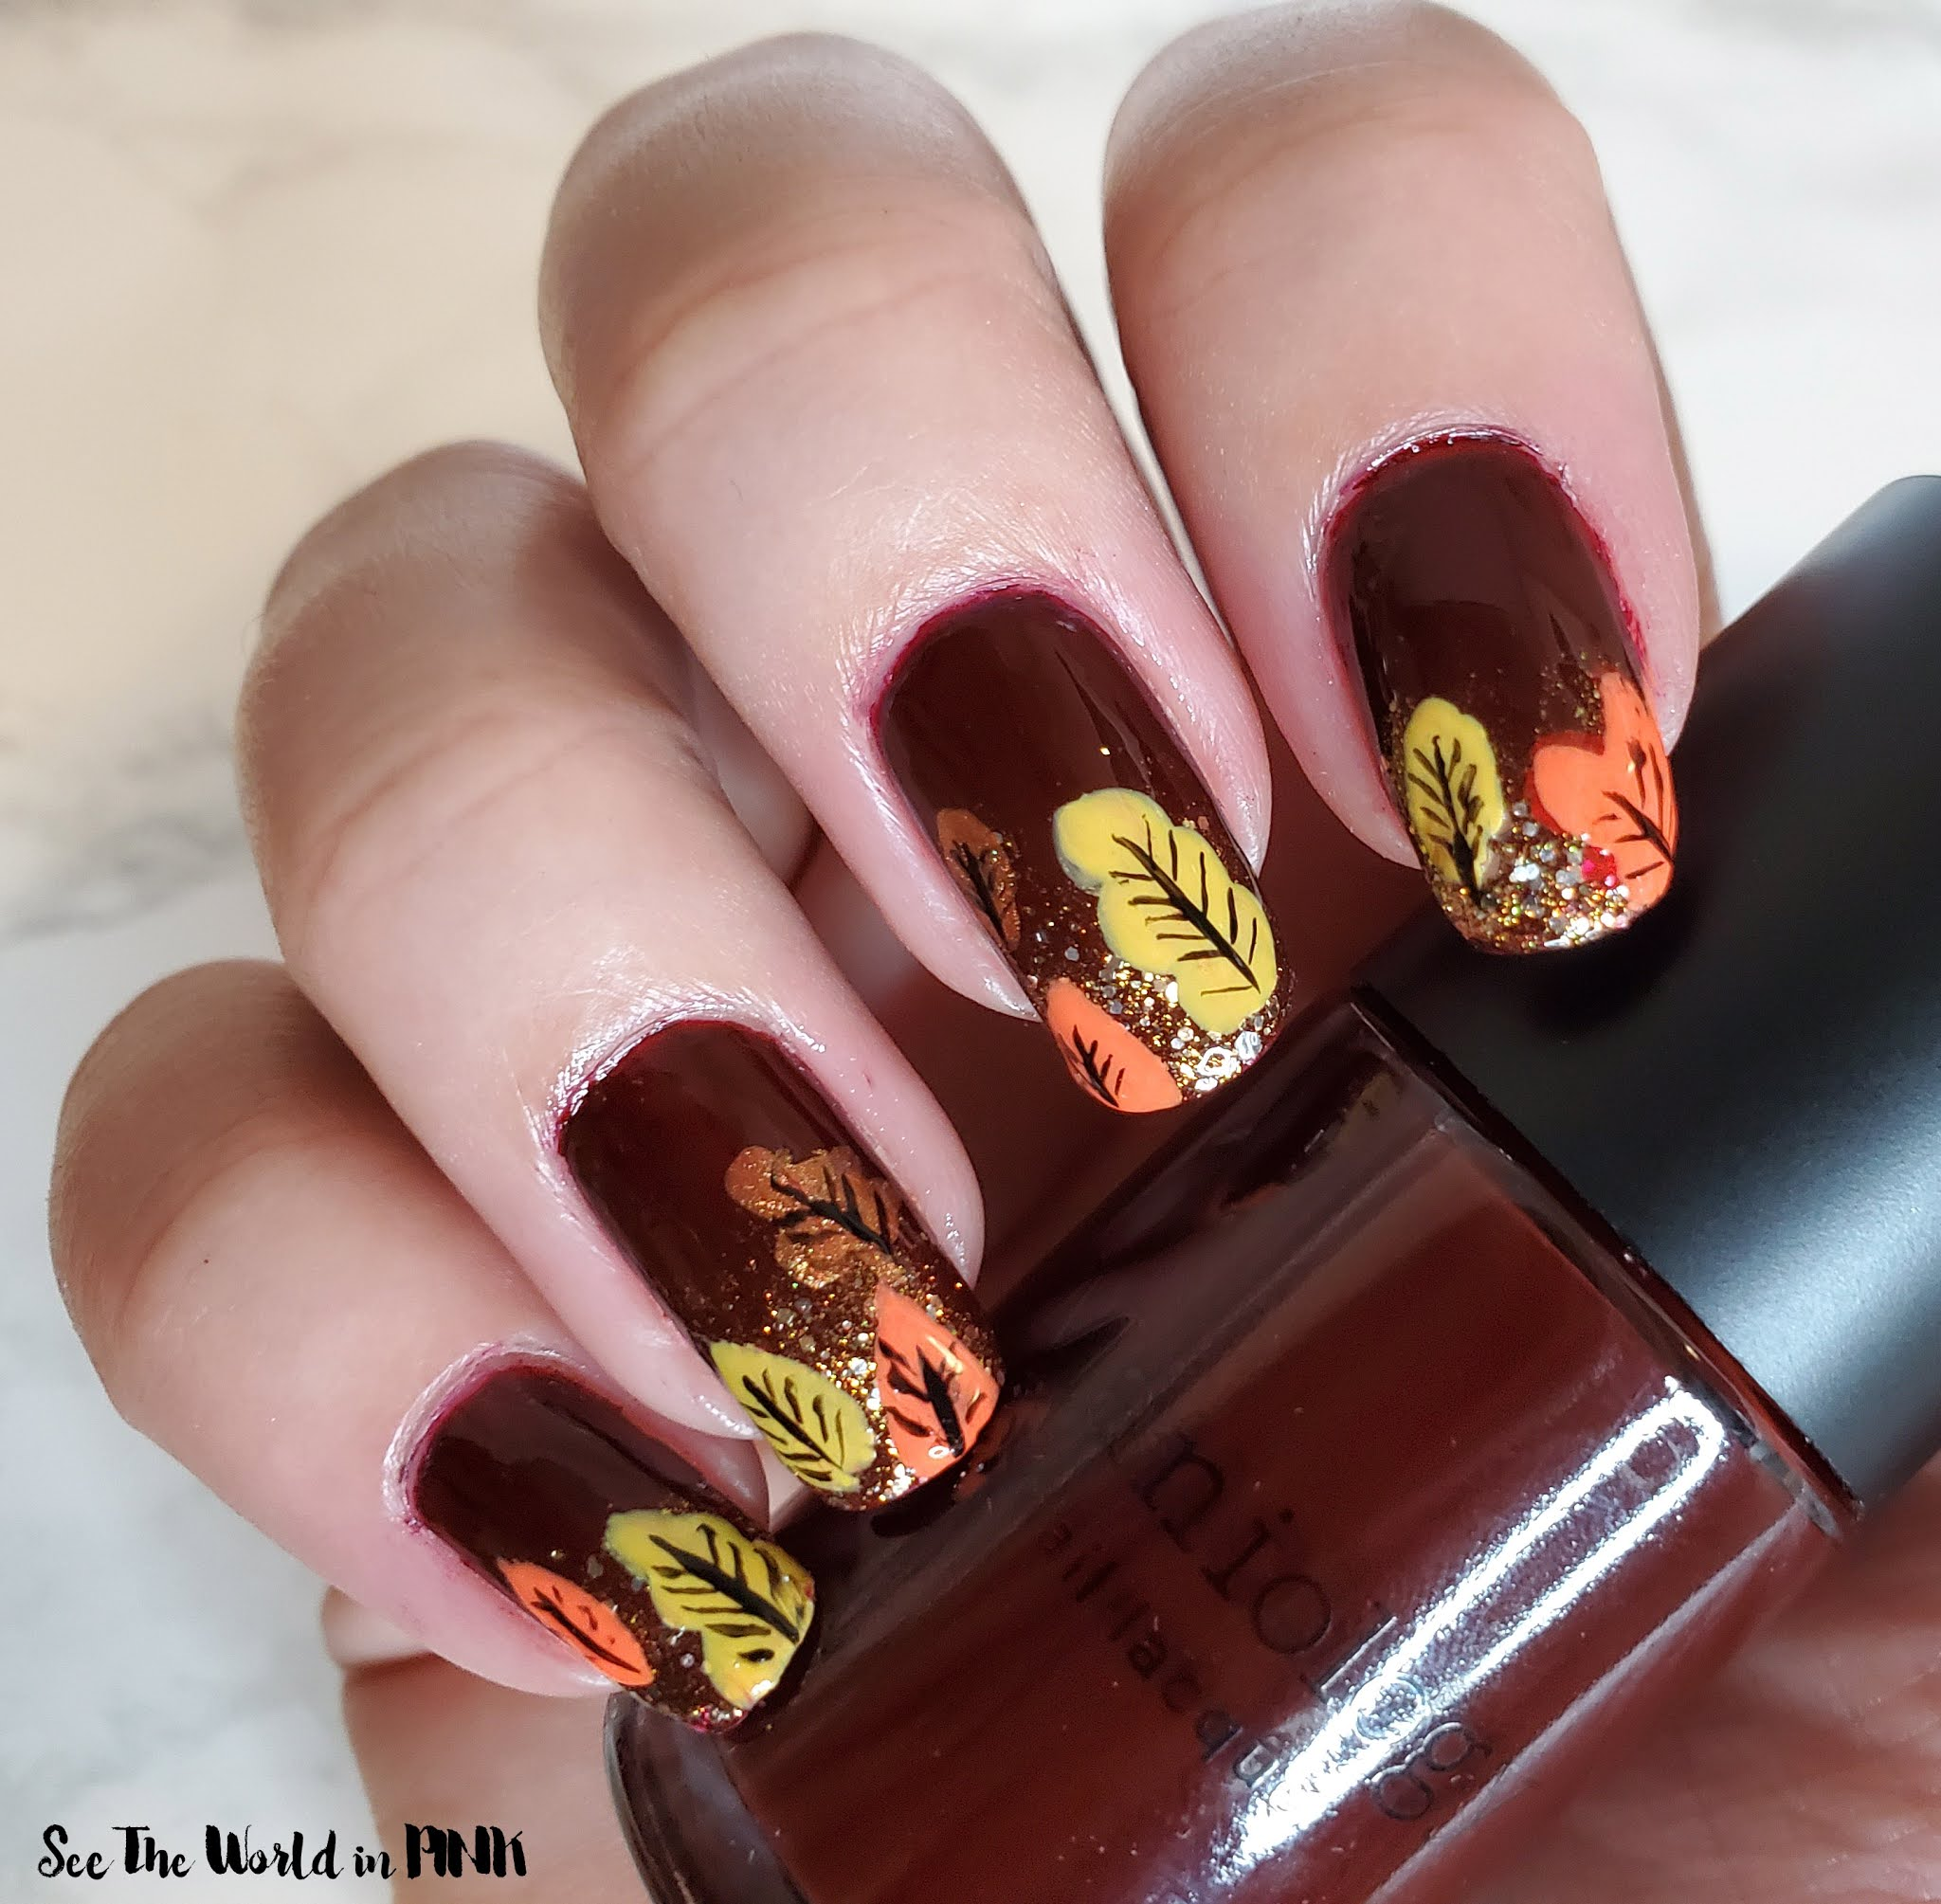 Manicure Monday - Fall Leaf Nail Art